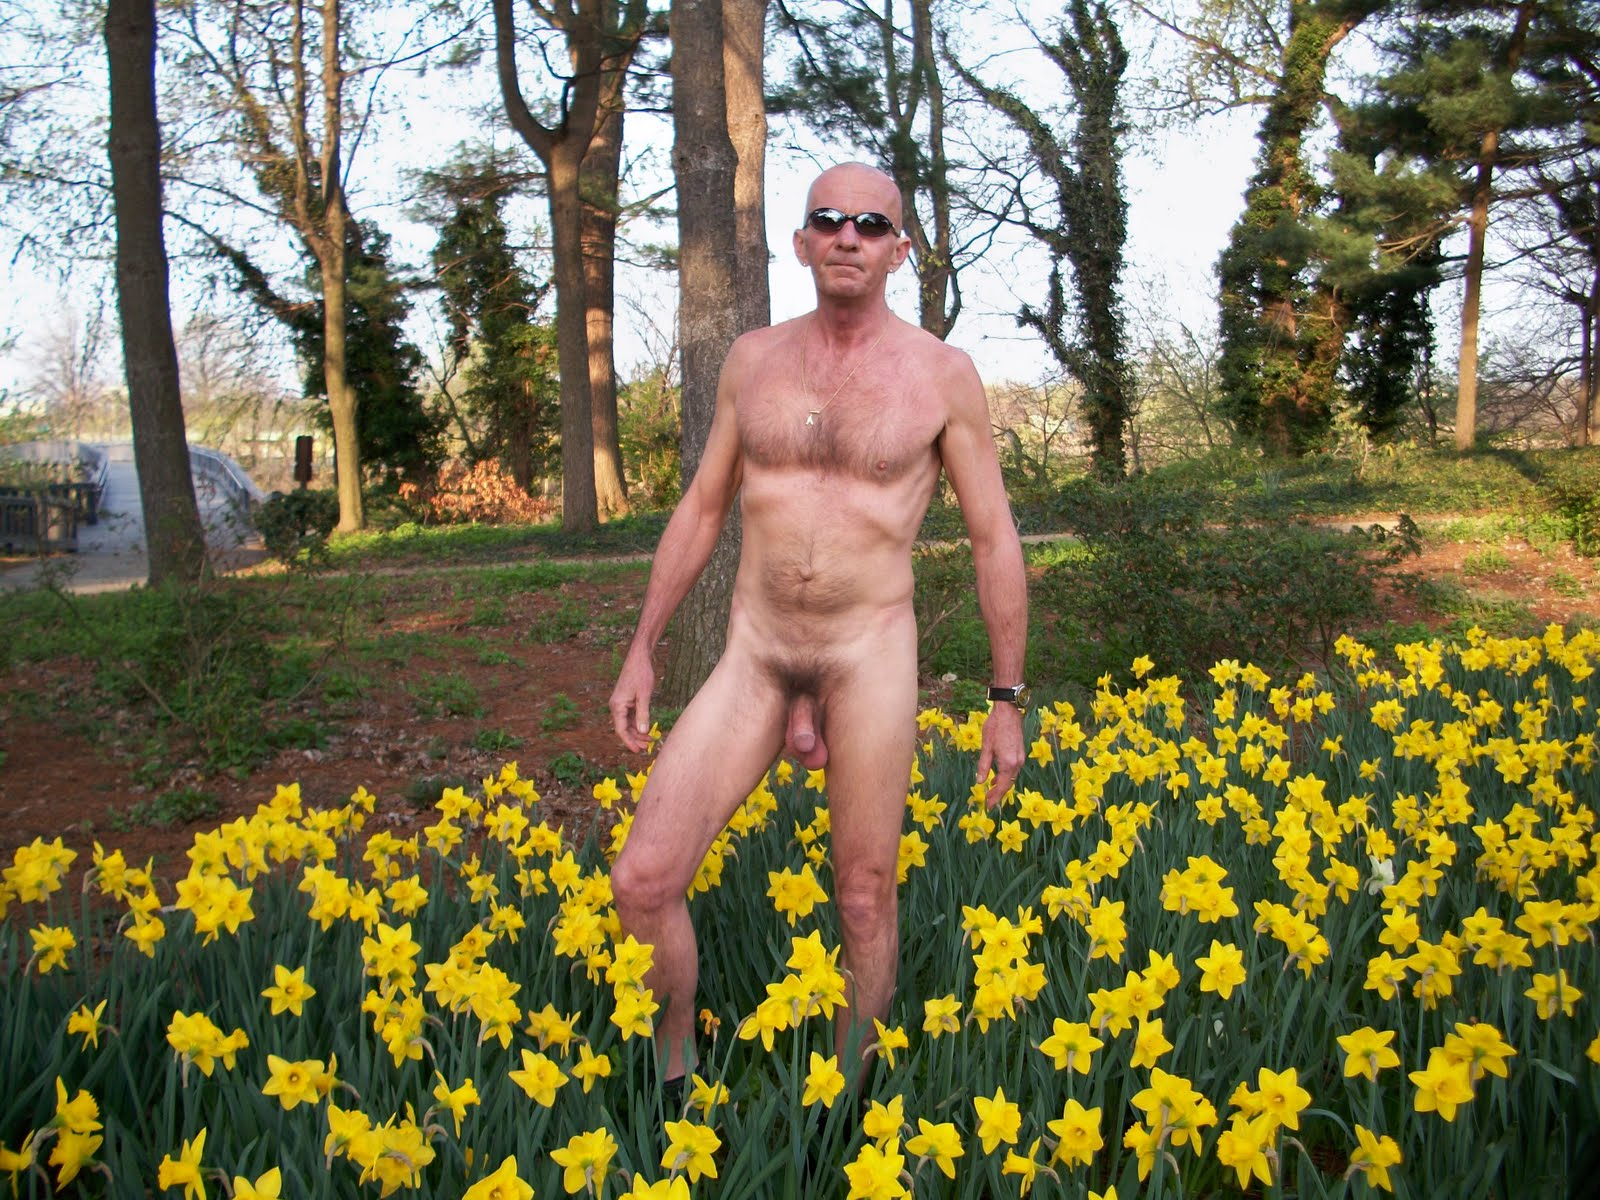 World Nude Gardening Day: